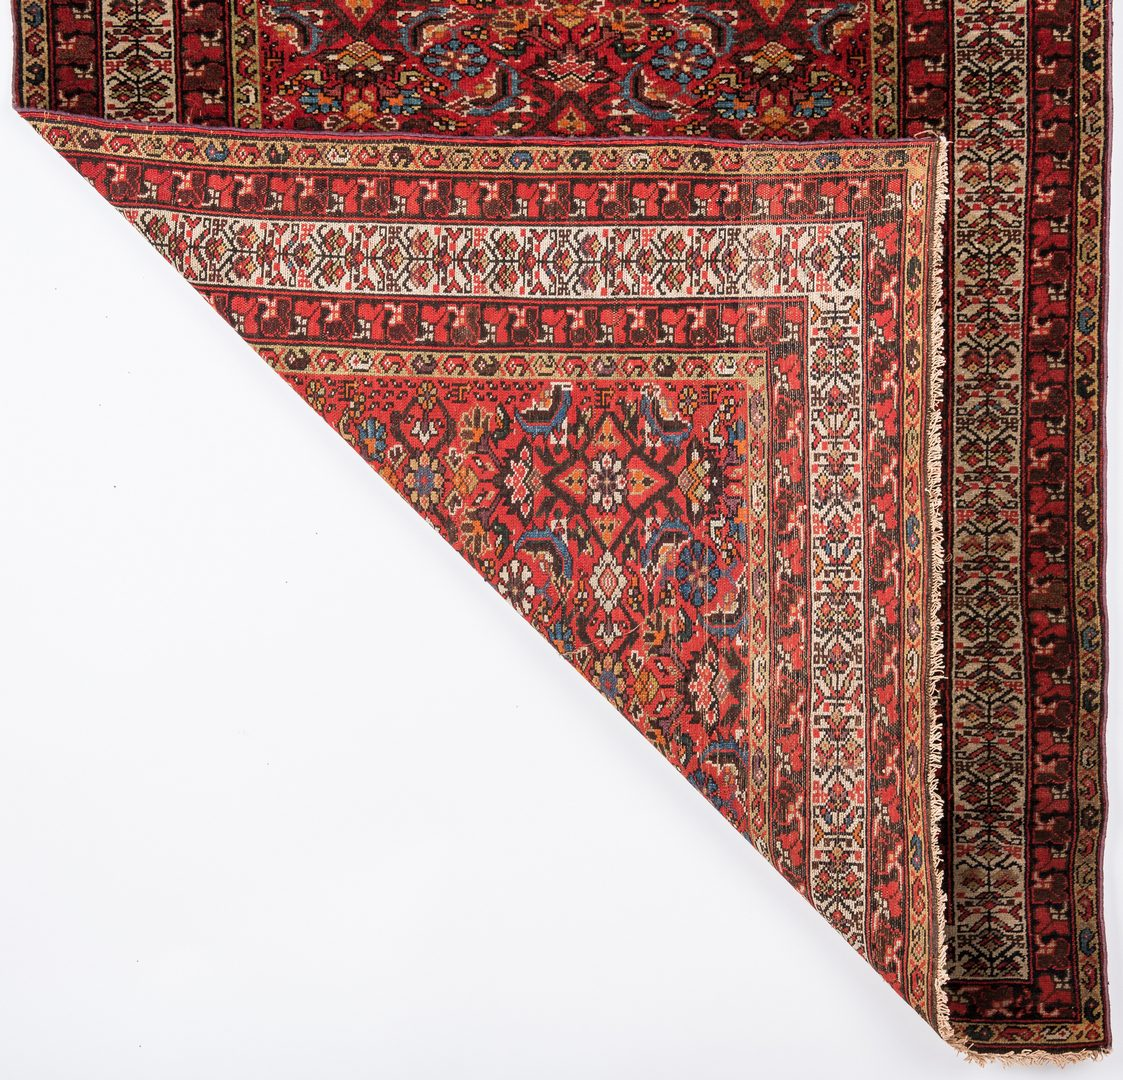 Lot 661: Antique Persian Malayer area rug